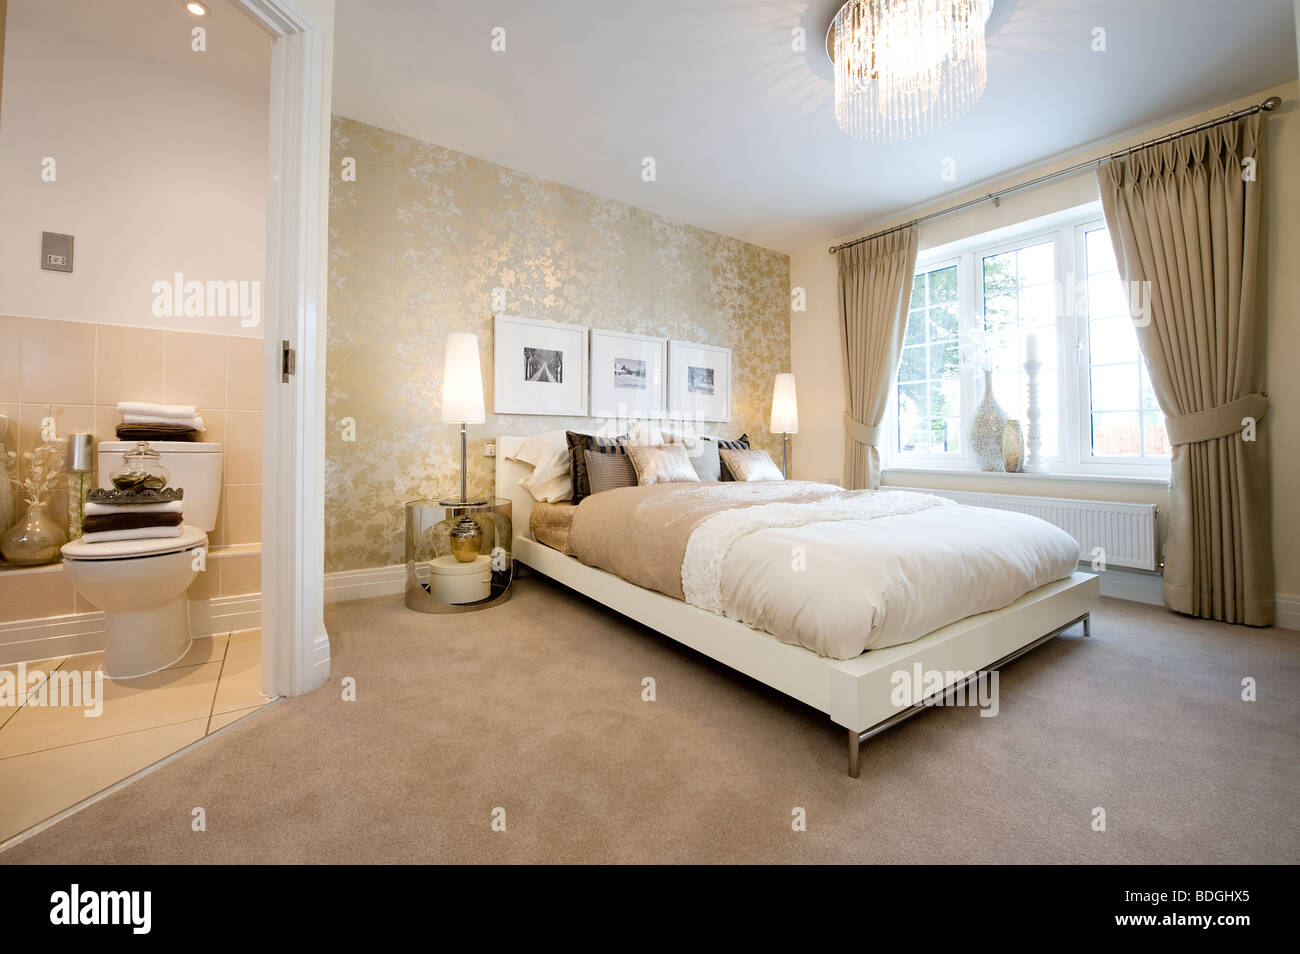 Beautifully decorated bedroom with a double bed and ensuite bathroom stock photo royalty free - Beautifully decorated bedrooms ...